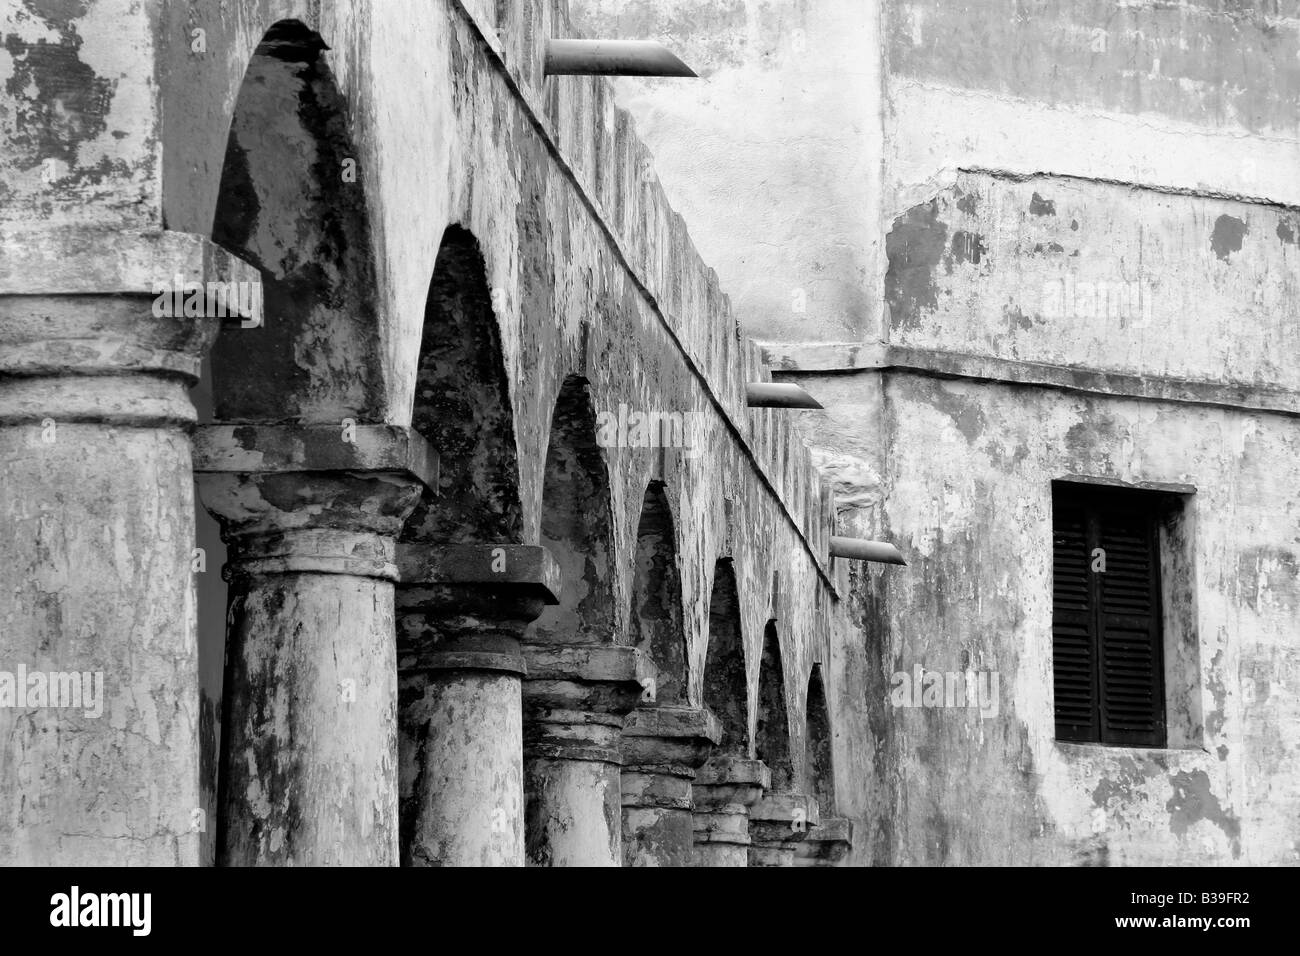 Pillars and arches lead to castle window in Ghana, Africa - Stock Image